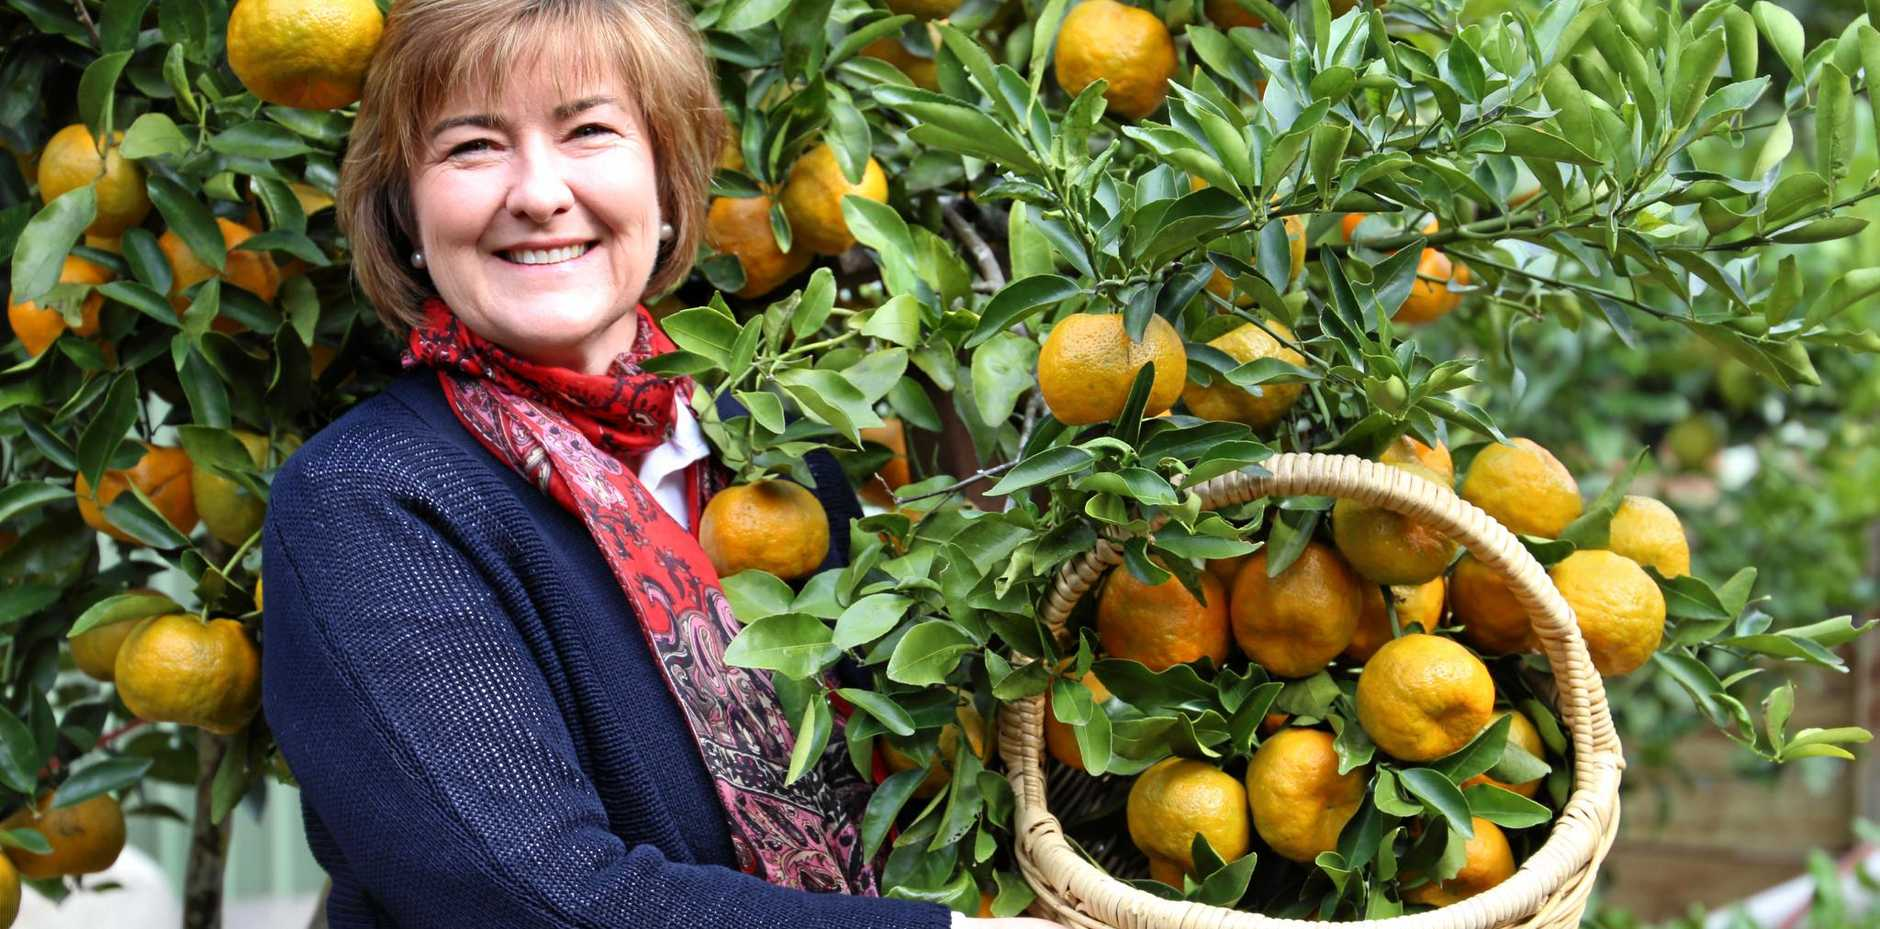 SPARE HARVEST: Helen Andrew's idea was sparked by an overhaul of mandarins one winter.